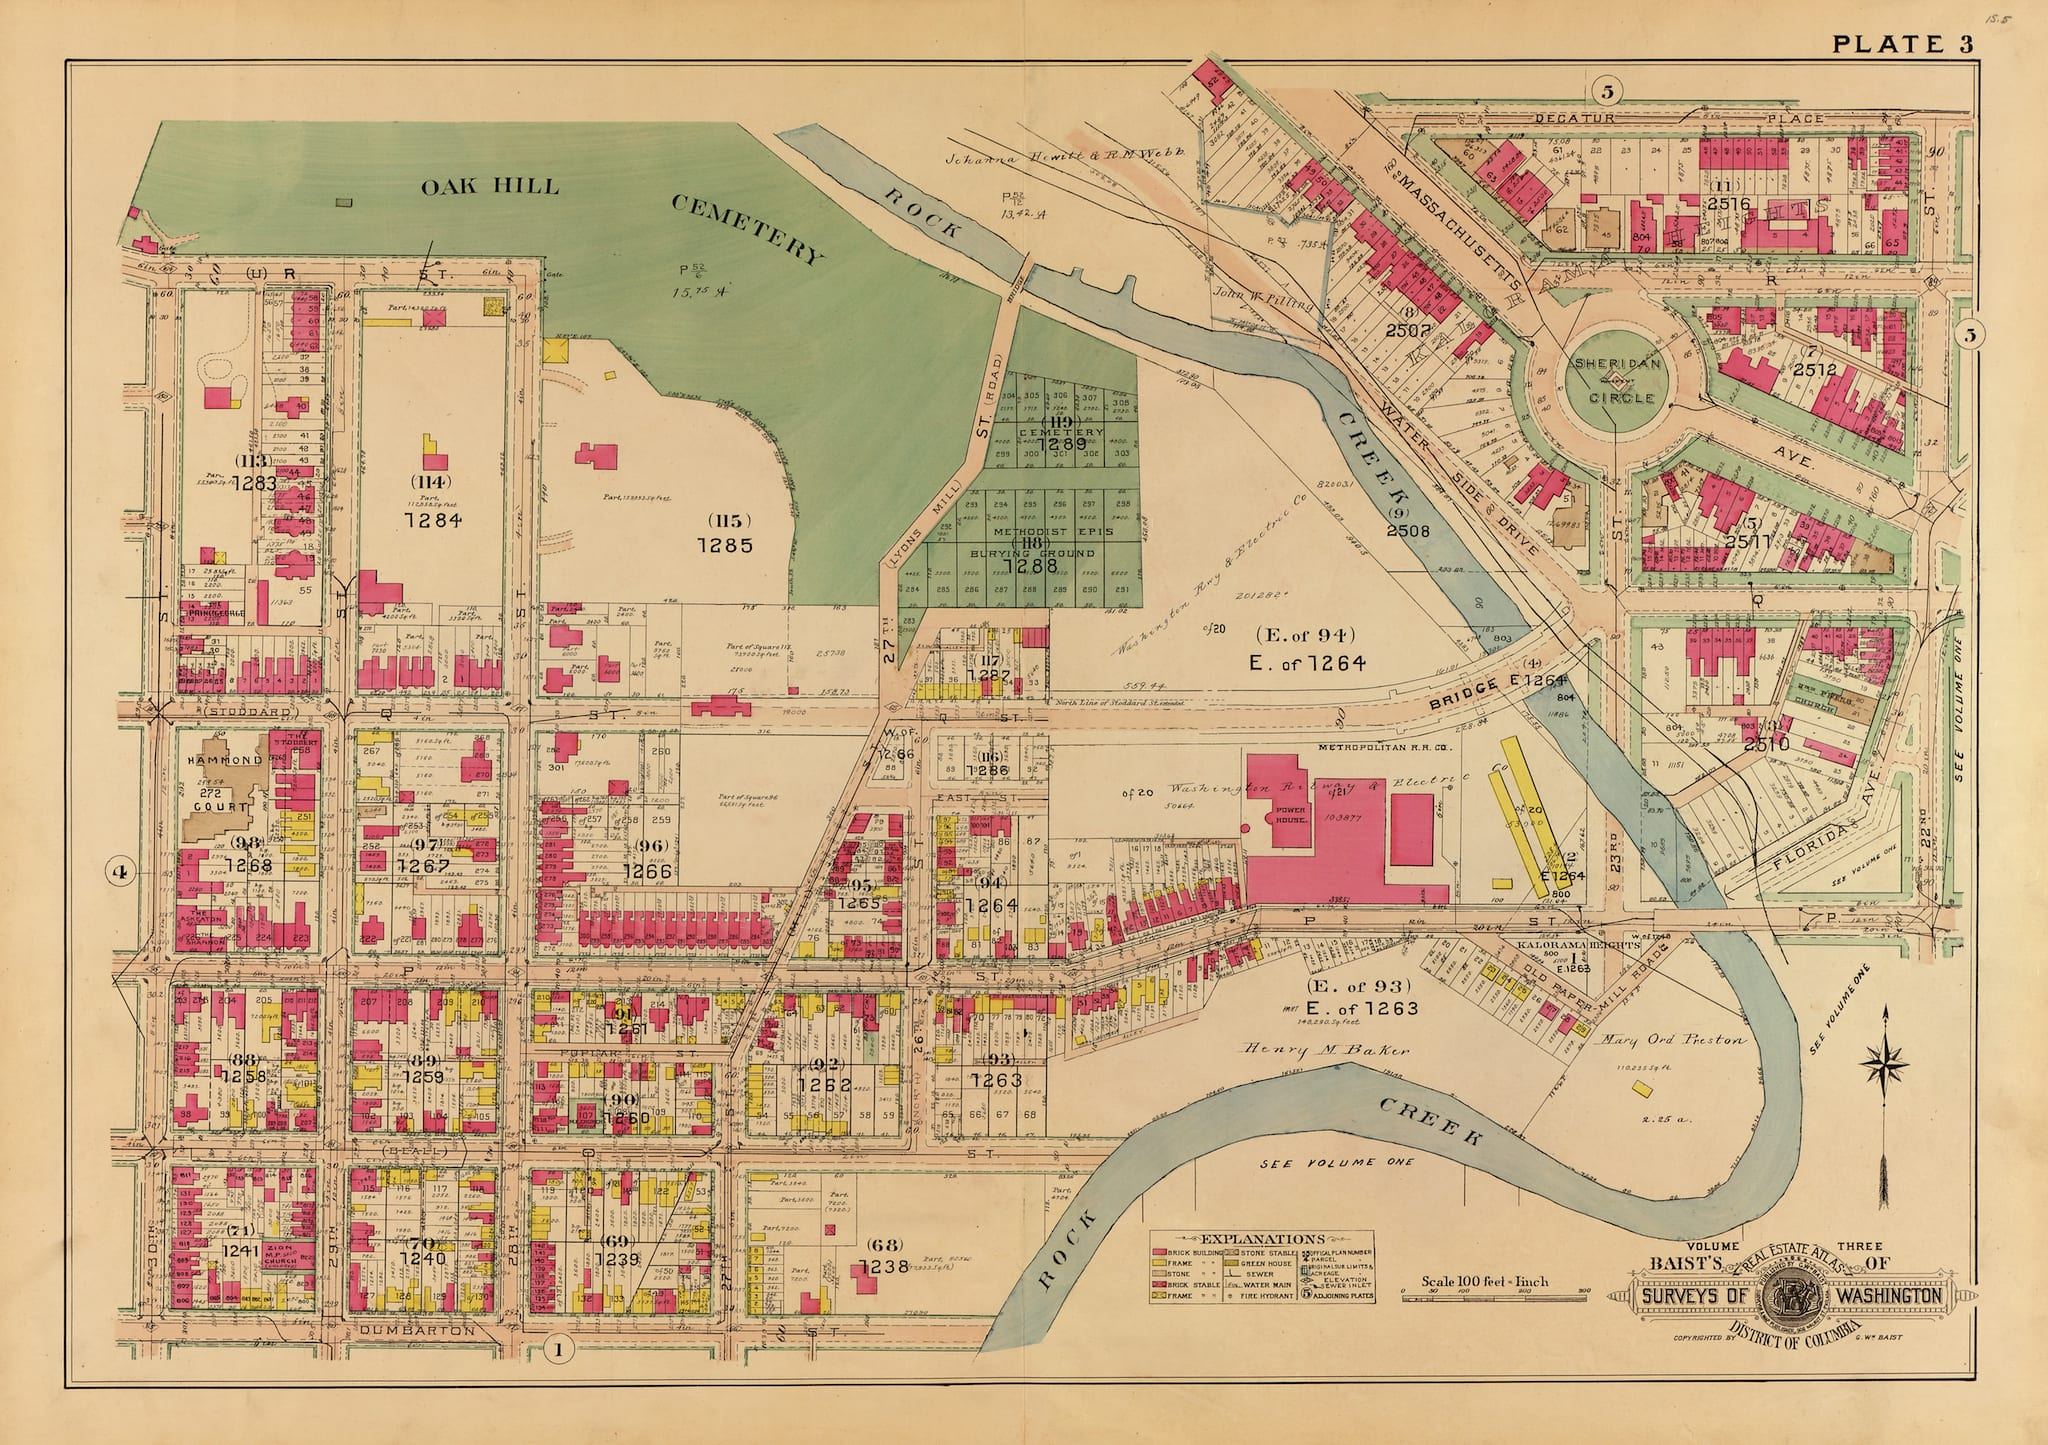 1915 map of Georgetown and Sheridan Circle